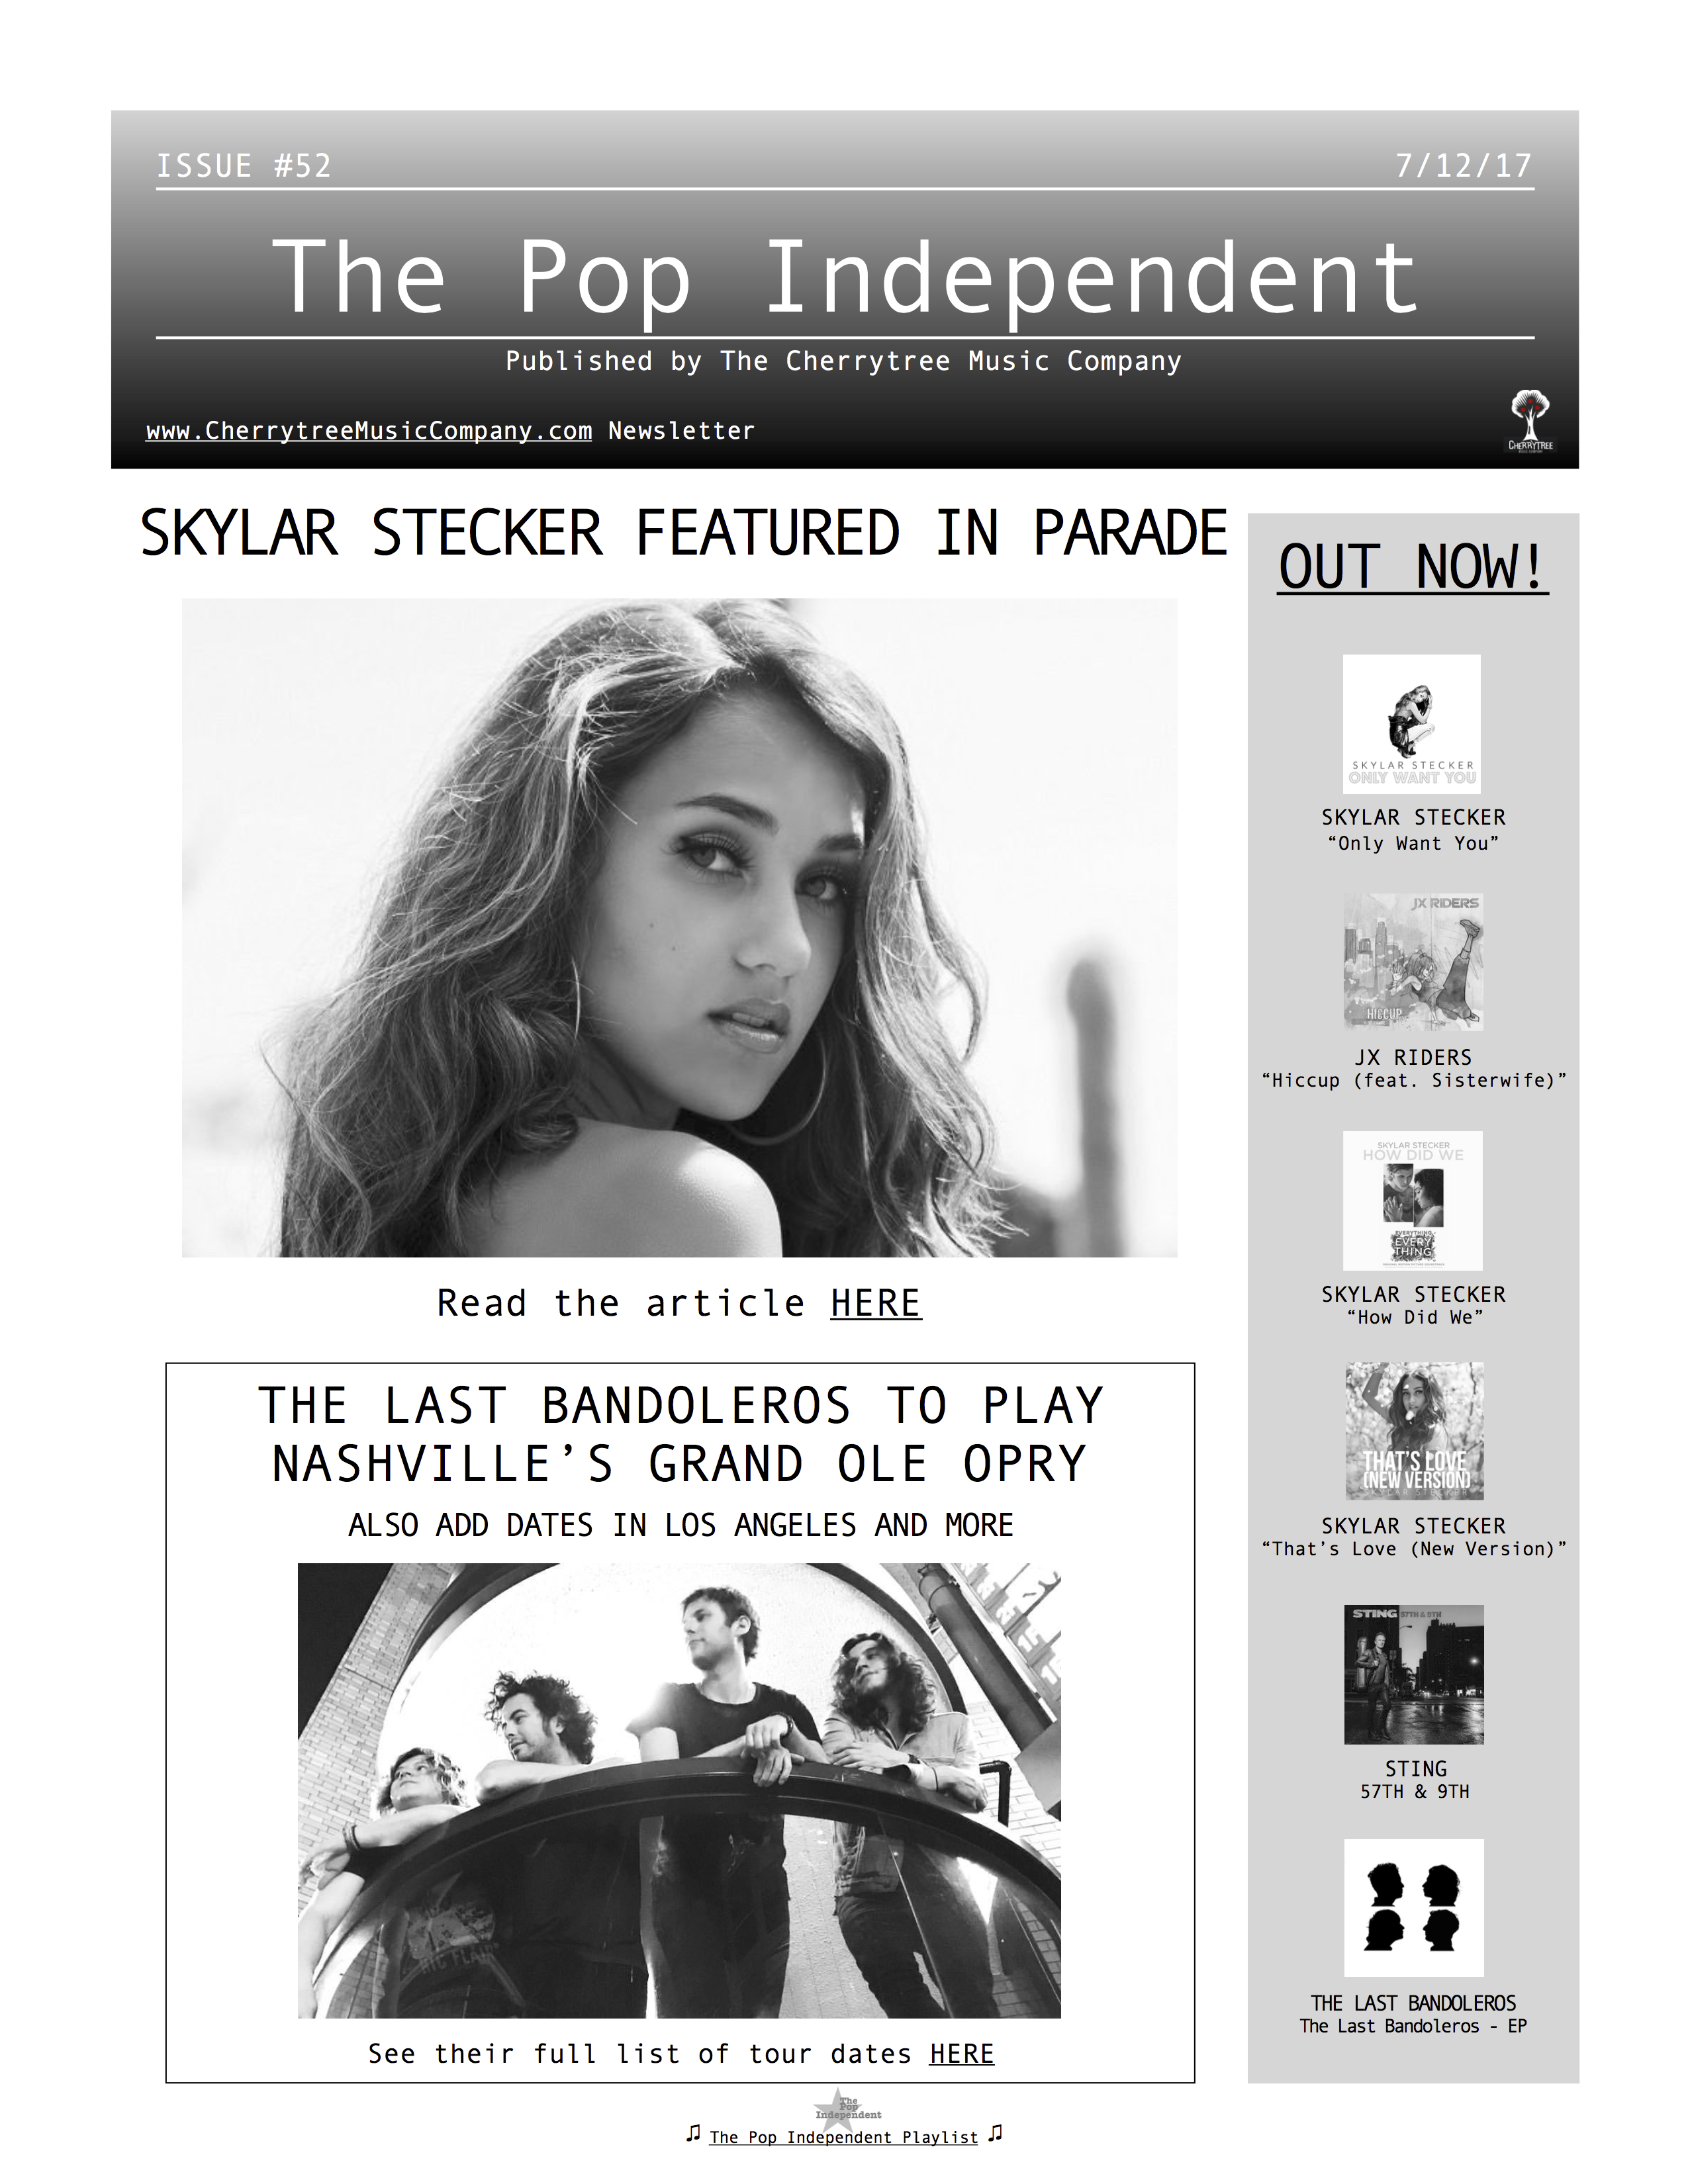 The Pop Independent, issue 52